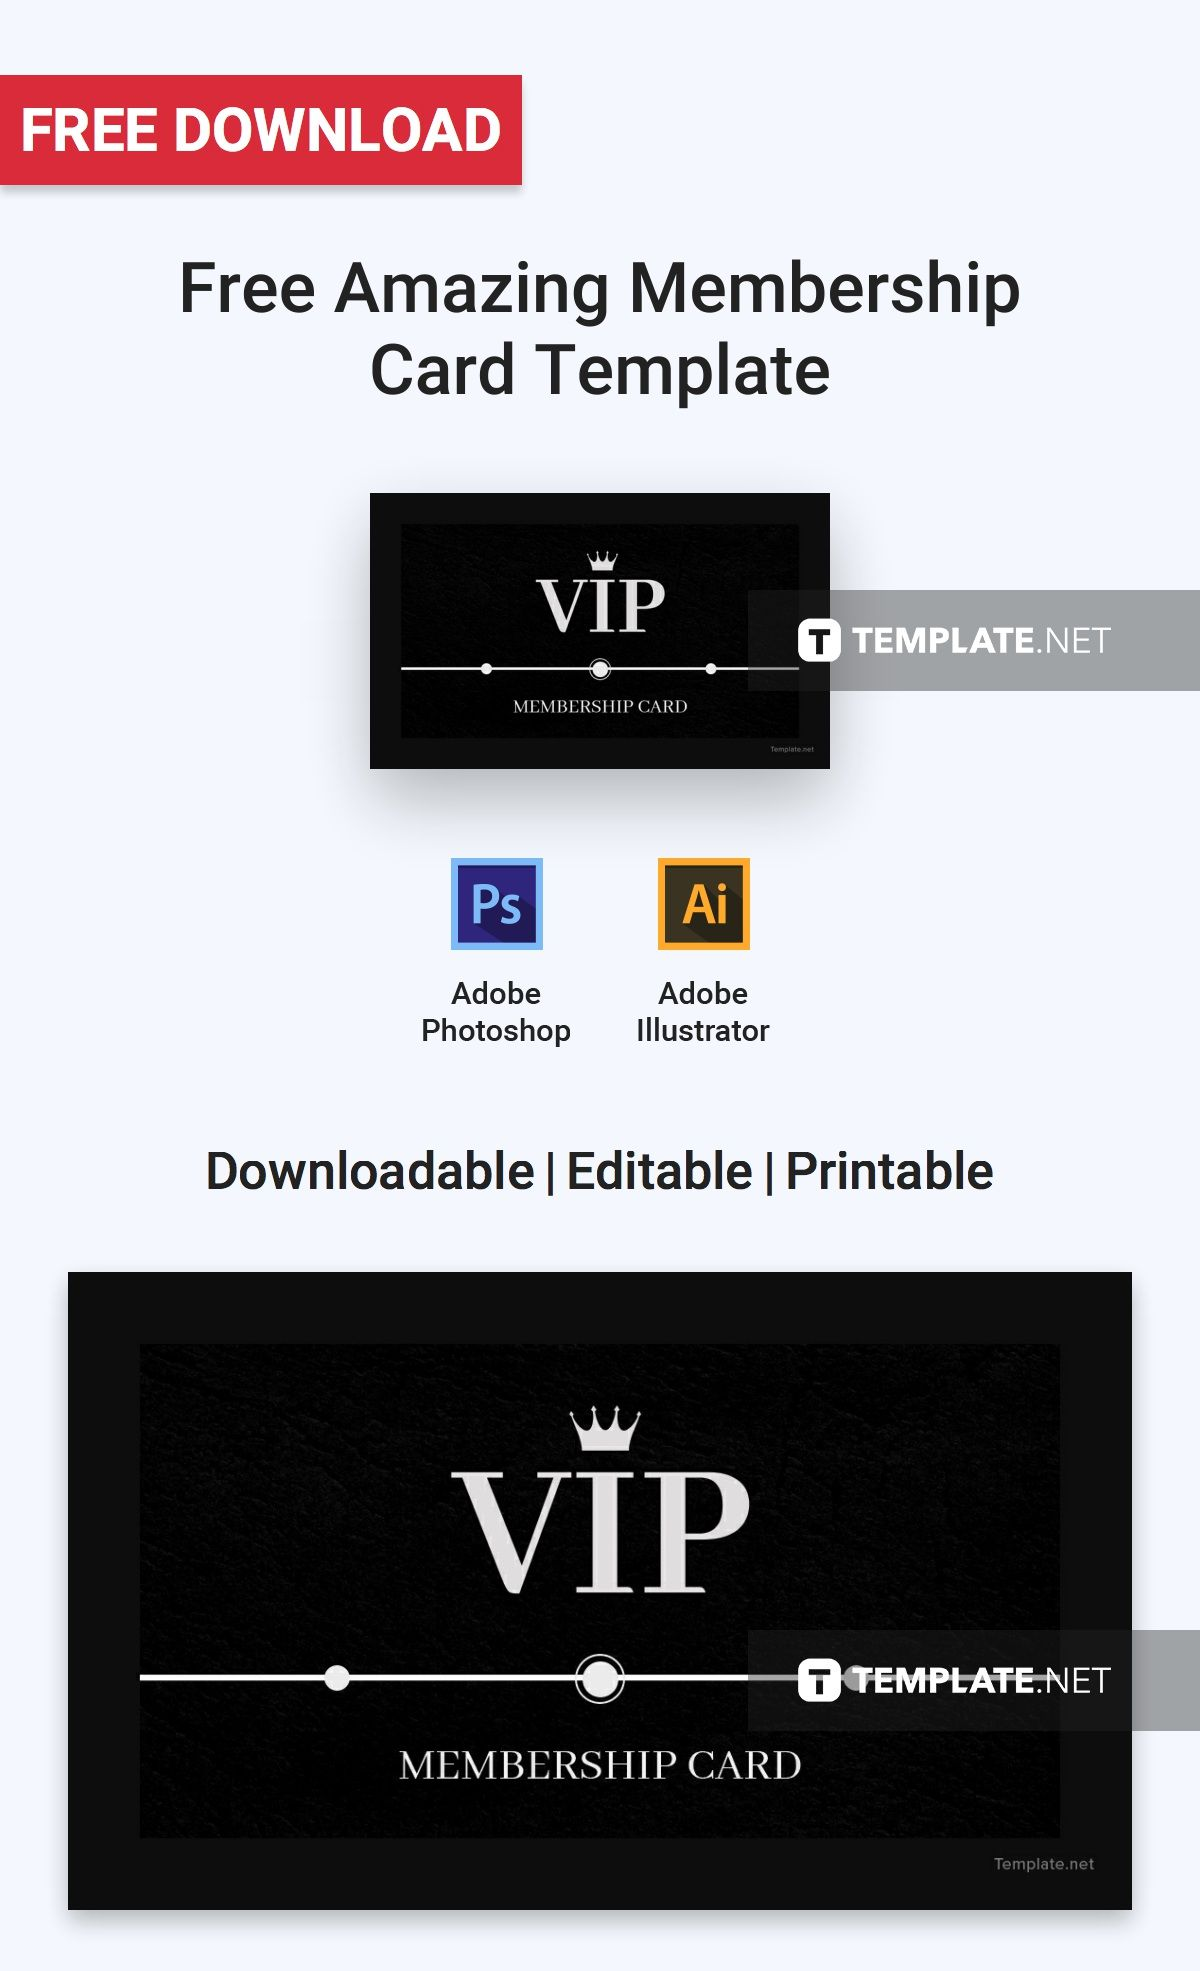 Amazing Membership Card Template Free Jpg Illustrator Word Apple Pages Psd Publisher Template Net Membership Card Card Templates Credit Card Statement